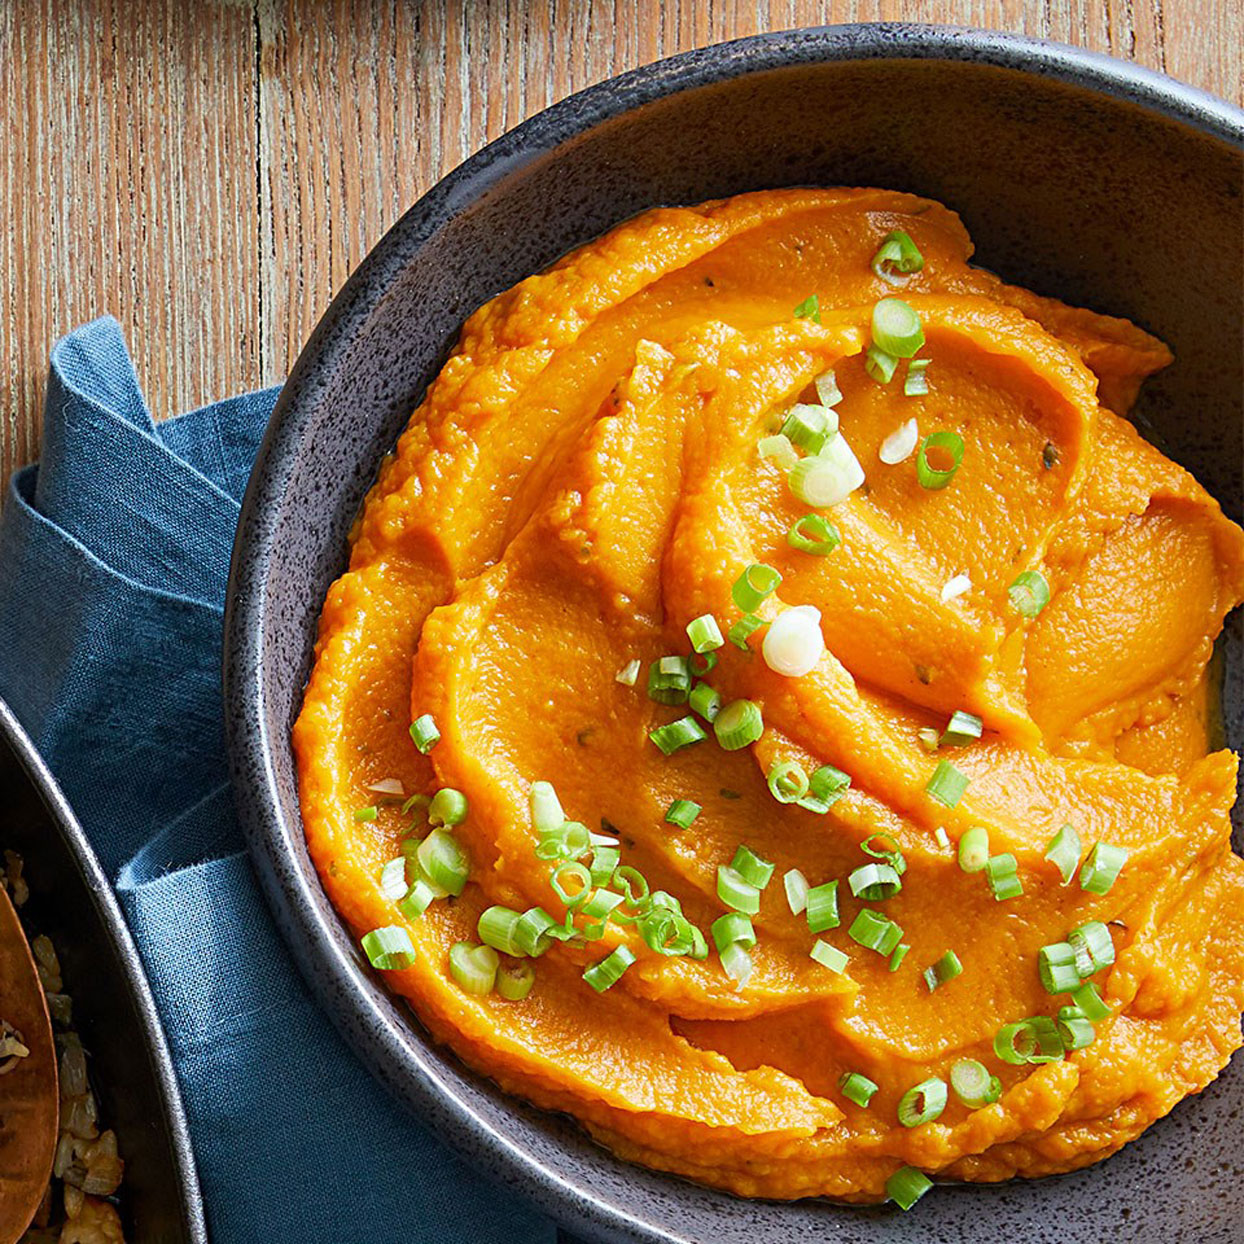 This colorful twist on traditional mashed potatoes swaps in roasted sweet potatoes and incorporates the flavors of smoked paprika, cayenne, and orange zest. You can use regular paprika instead of smoked, and can omit the cayenne for a less spicy version.